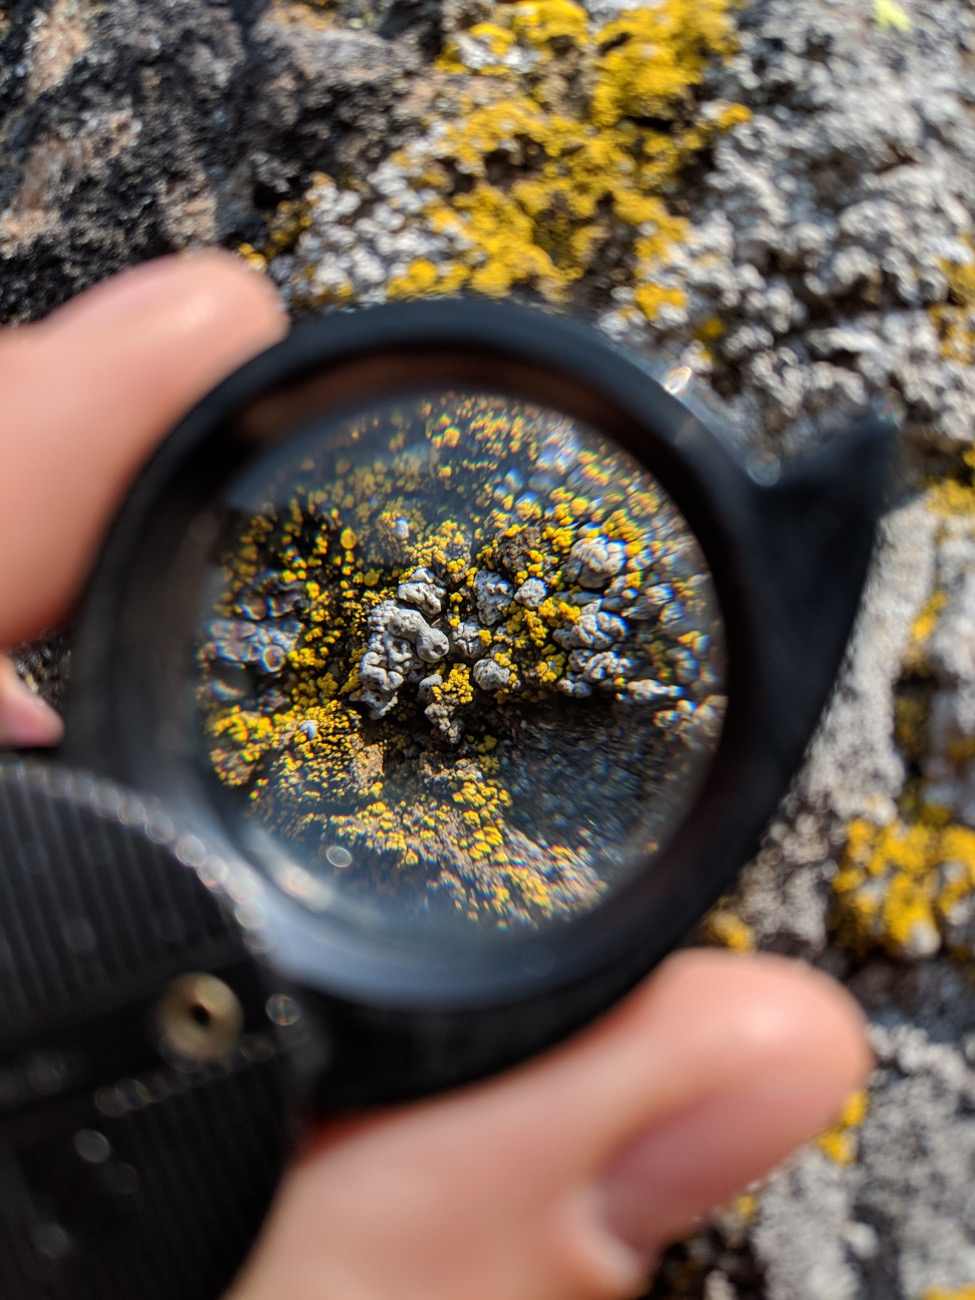 Taking a closer look at the lichens found on Pilot Rock